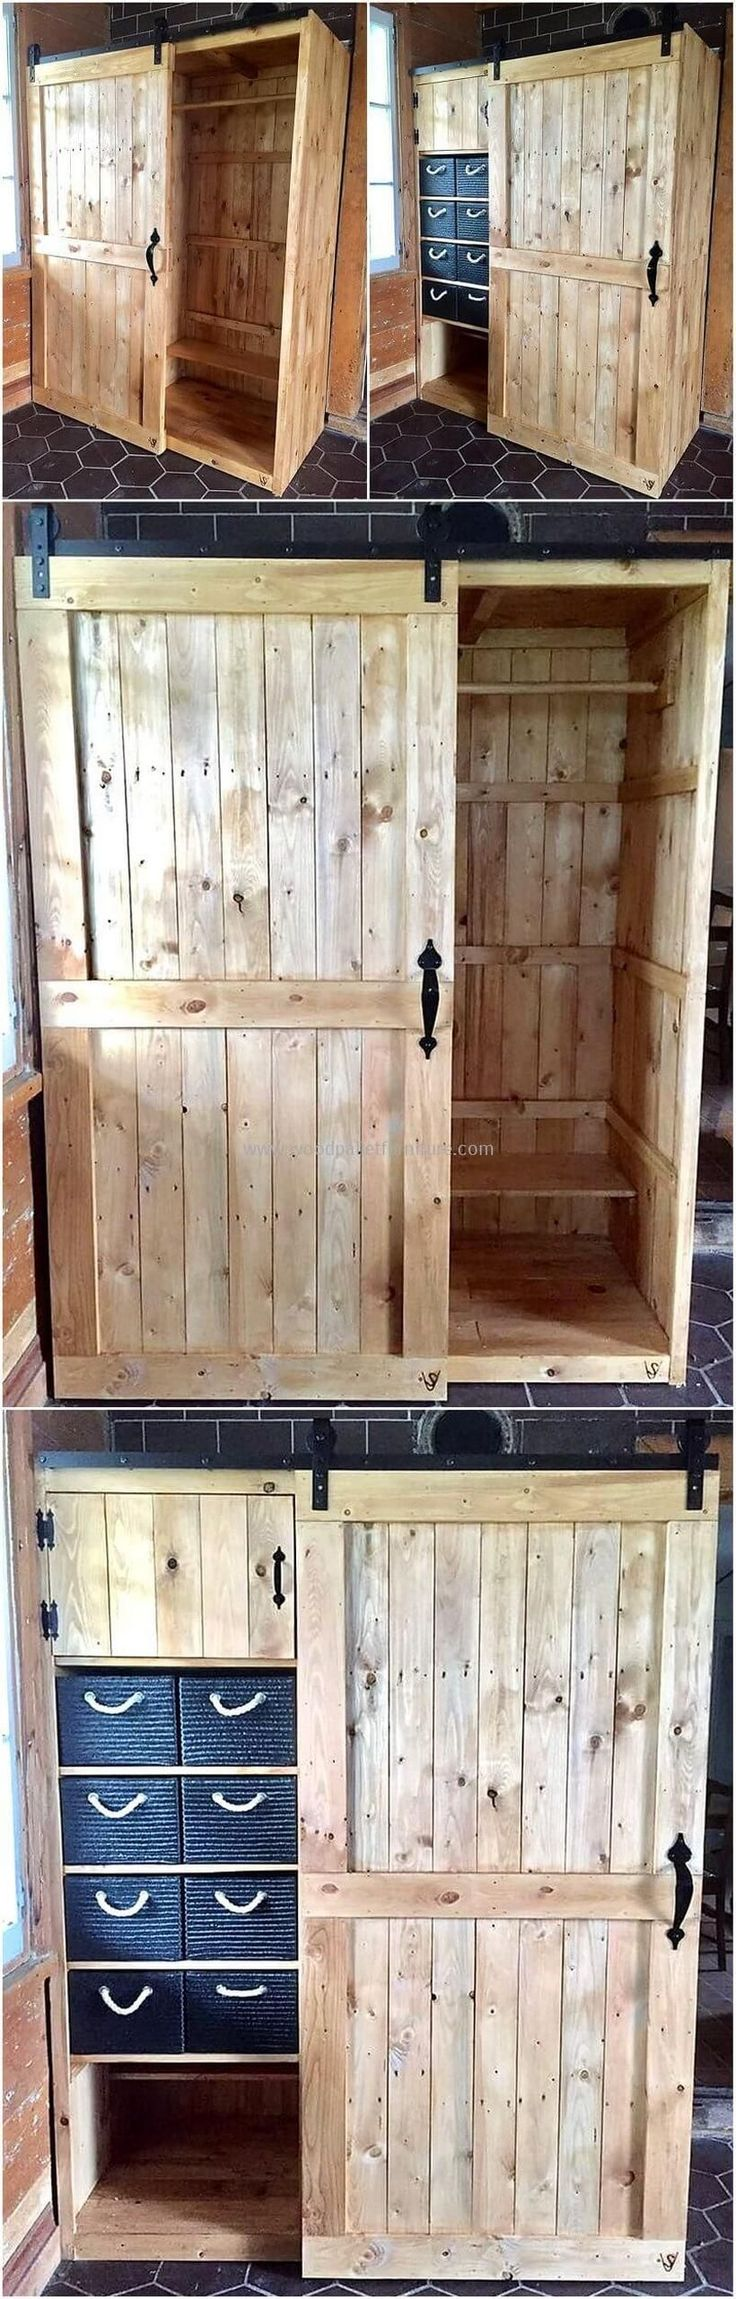 Get prepared! Here is the best time where you can create with some new, modern and unique wood pallets closet design with old shipping pallet of your place. It would be not wrong to say that upcycling the old and wasted material of your home into some appealing and exceptional closet design will always be #DIYHomeDecorPallets